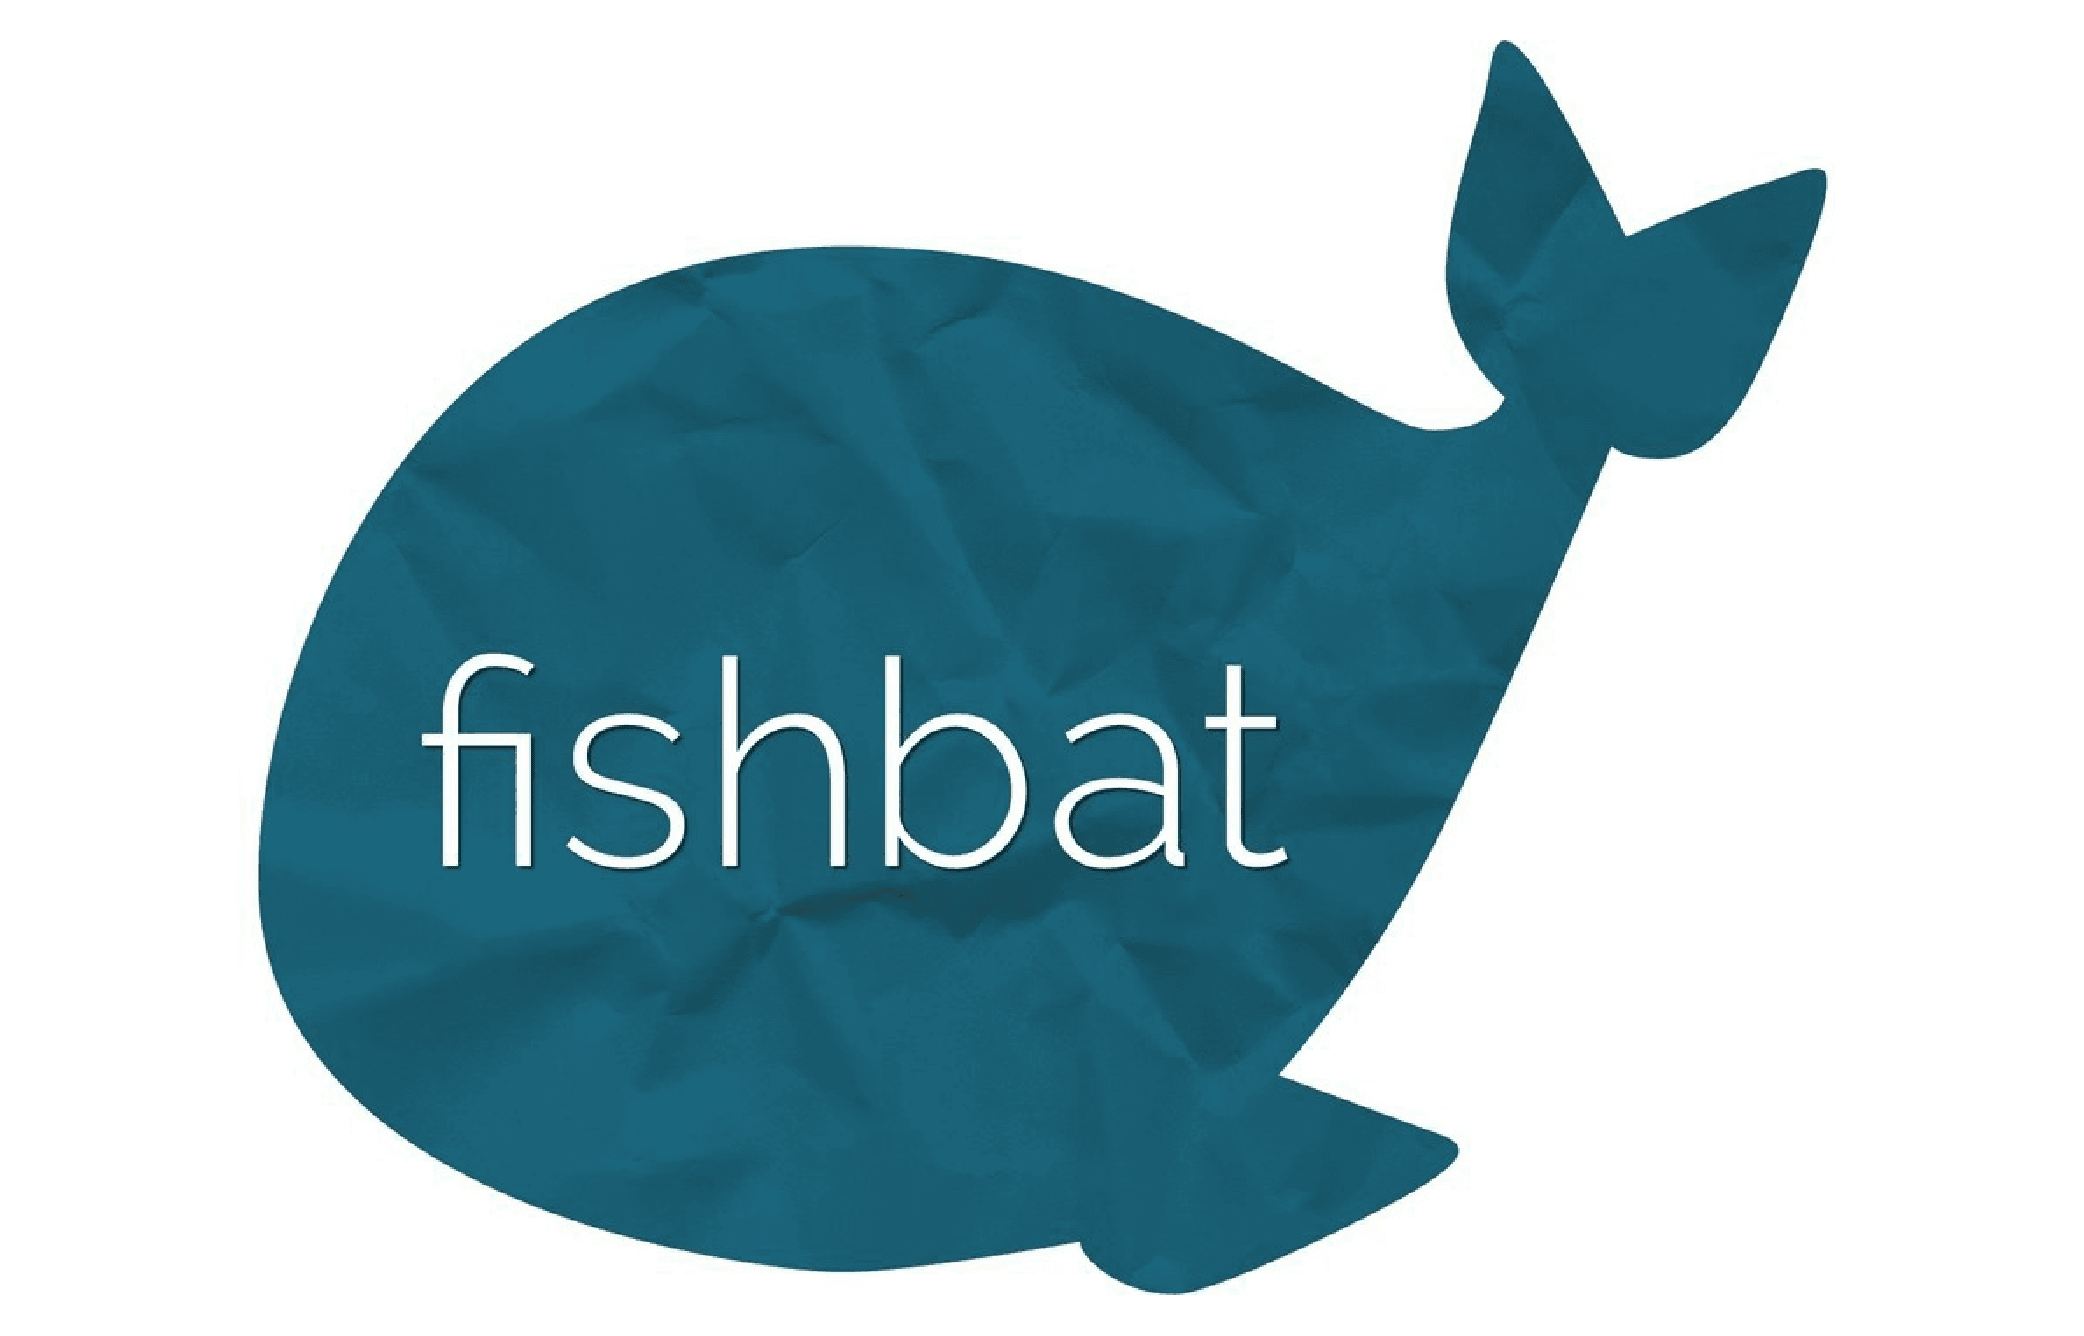 PointofSale Digital Marketing Company, fishbat. Explains 3 Reasons Why Your Website Needs Evergreen Content